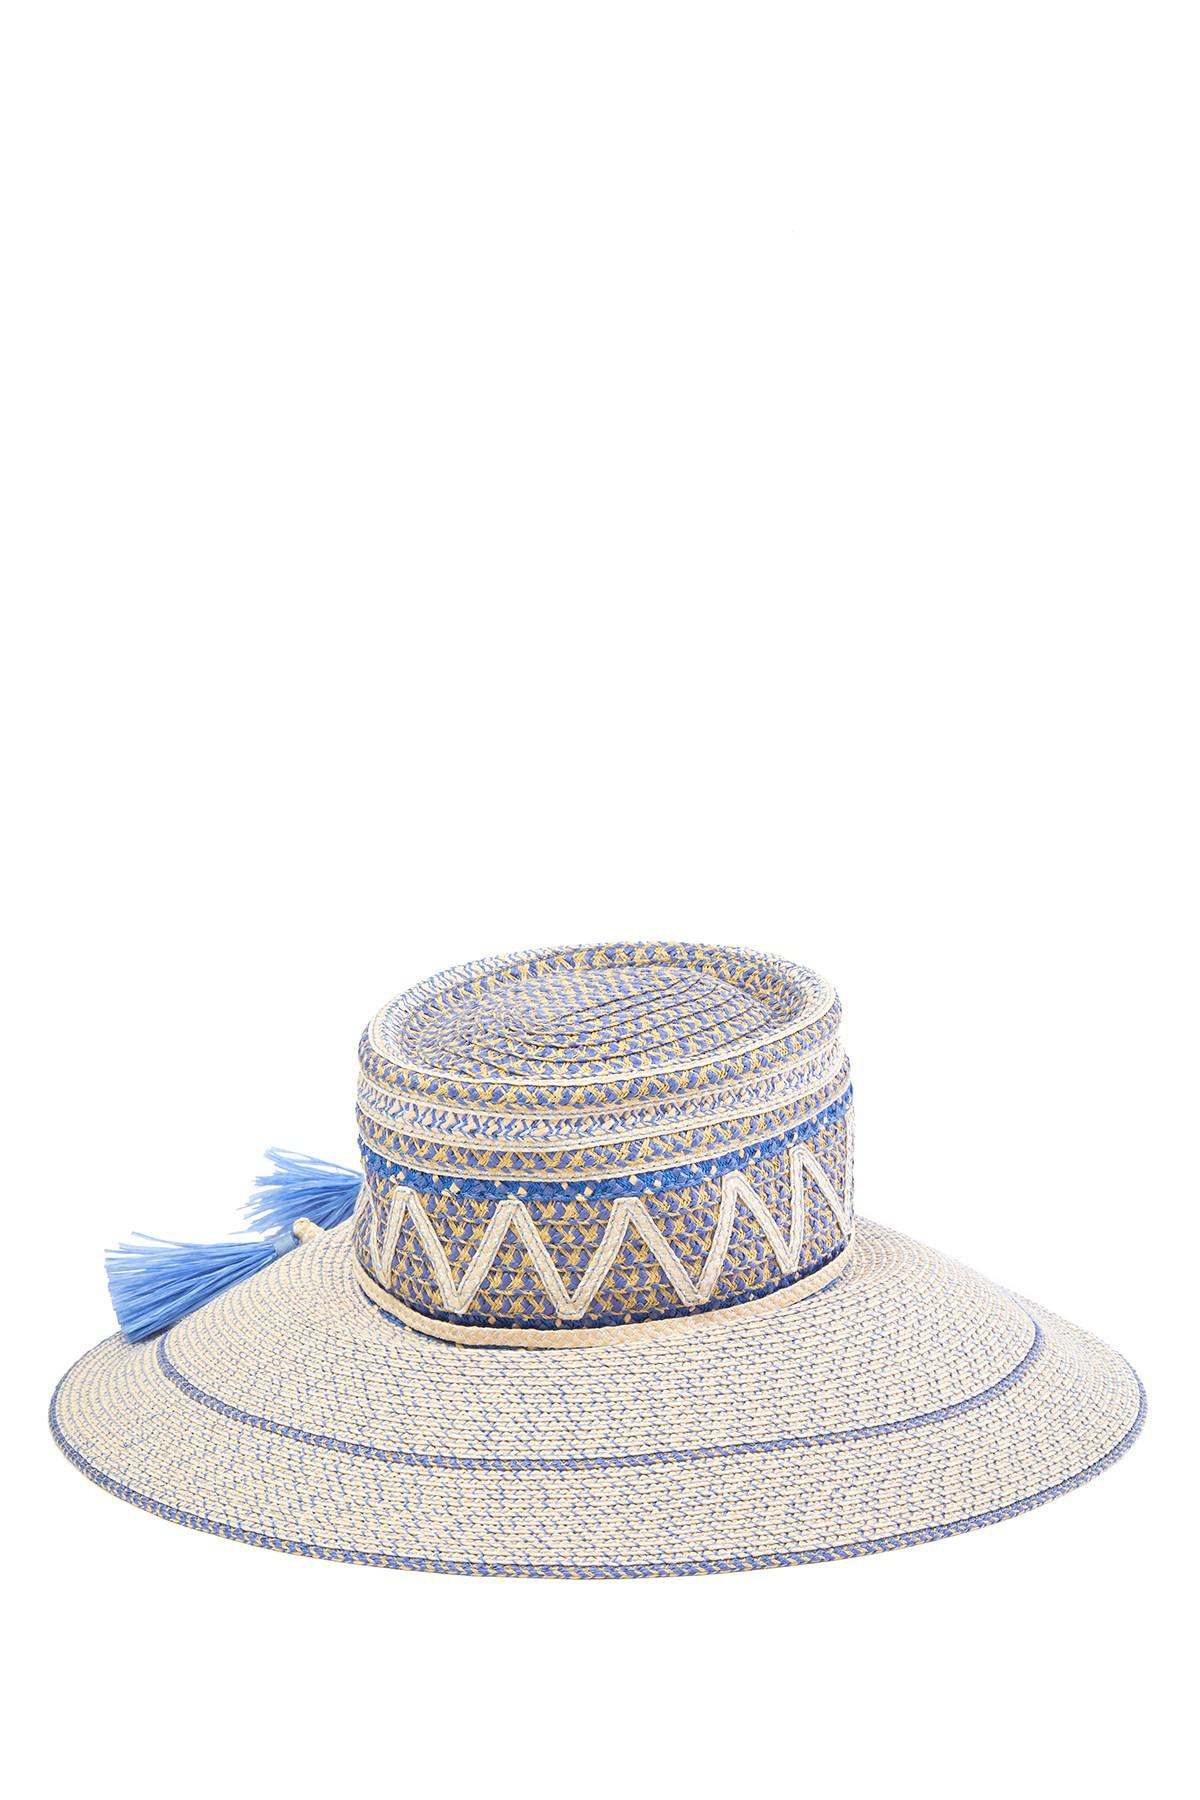 Lyst - Eric Javits Palermo Squishee Patterned Sun Hat in Blue 97539effc6e